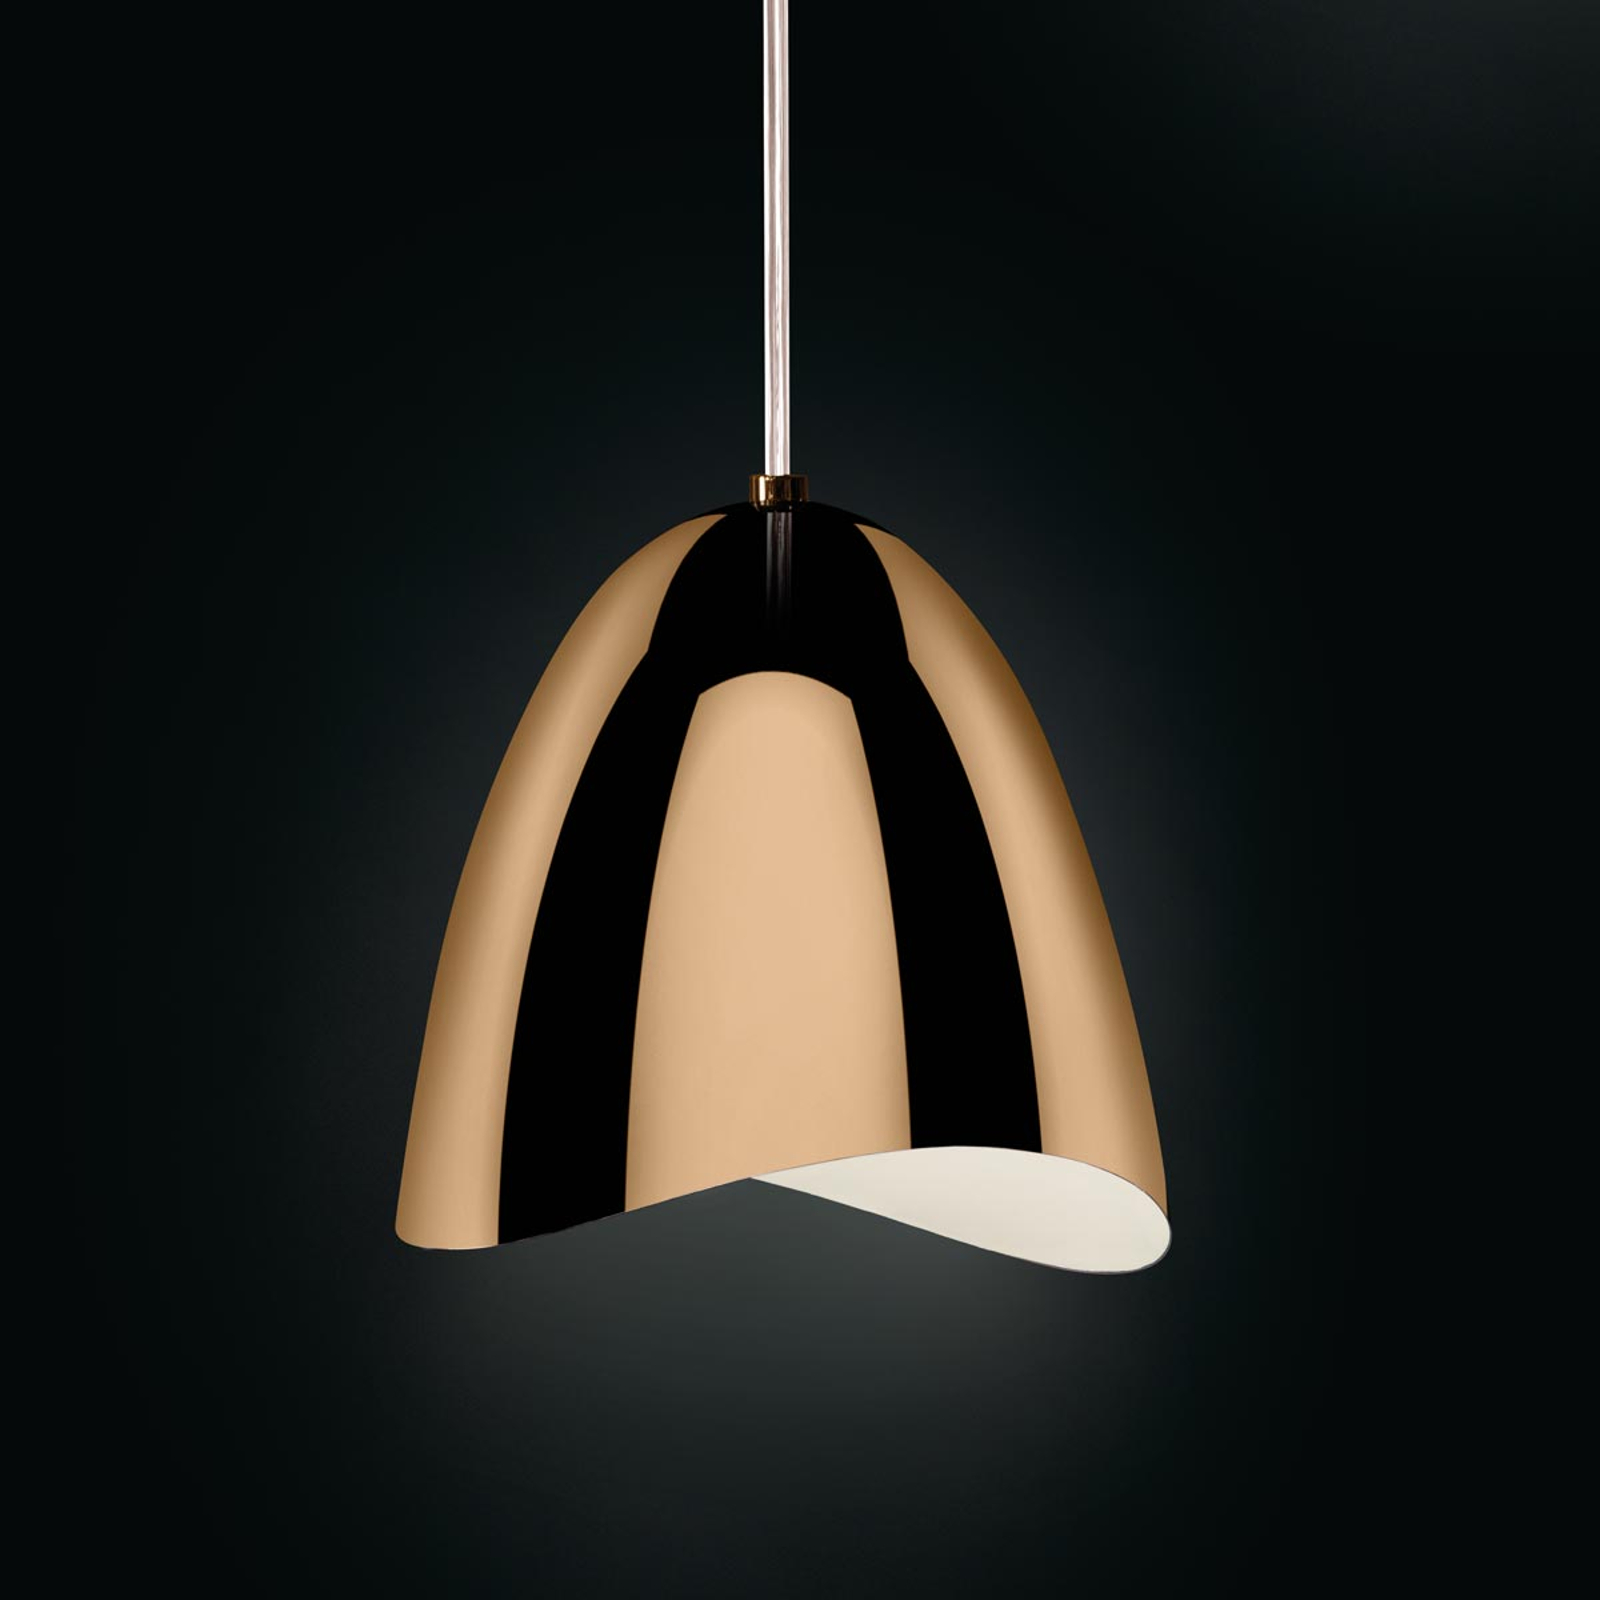 Messingfarbene LED hanglamp Mirage